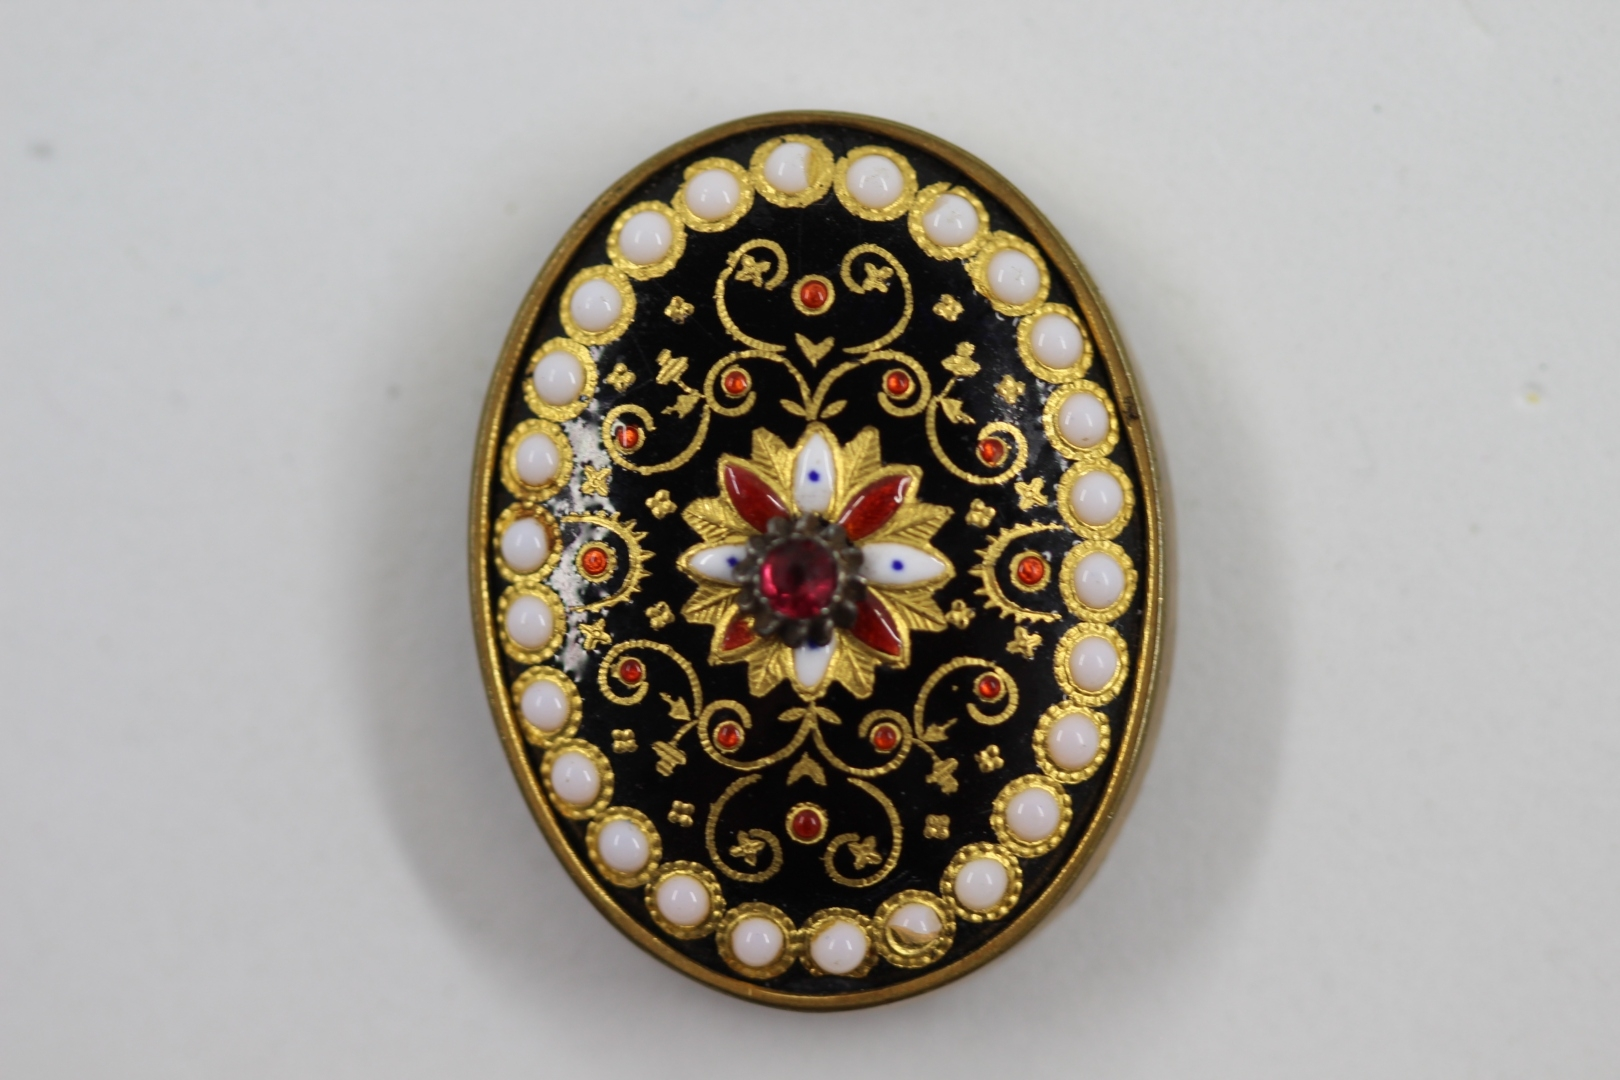 Limoges Enamel Mid 20th Century Button - The Button Queen